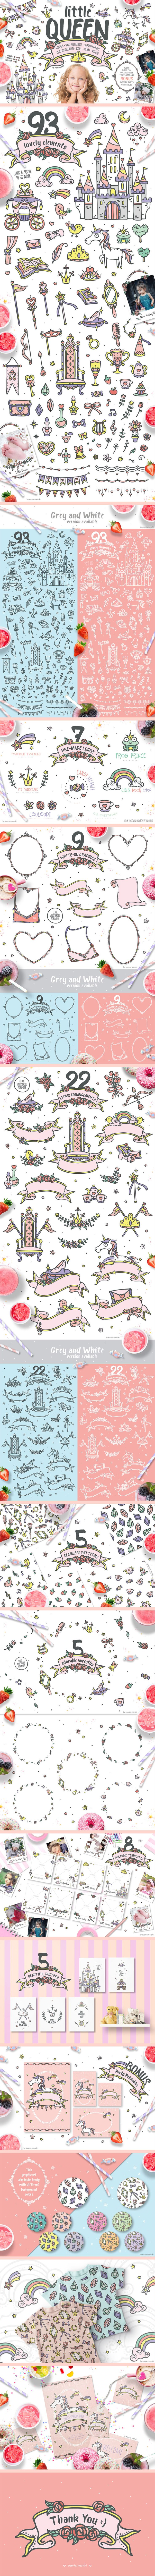 30% OFF. Little Queen and princess adorable graphic pack. Castle, unicorn, mirror, glass sliper, and many other lovely elements, patterns, wreath, polaroid templates, birthcay party printables, etc